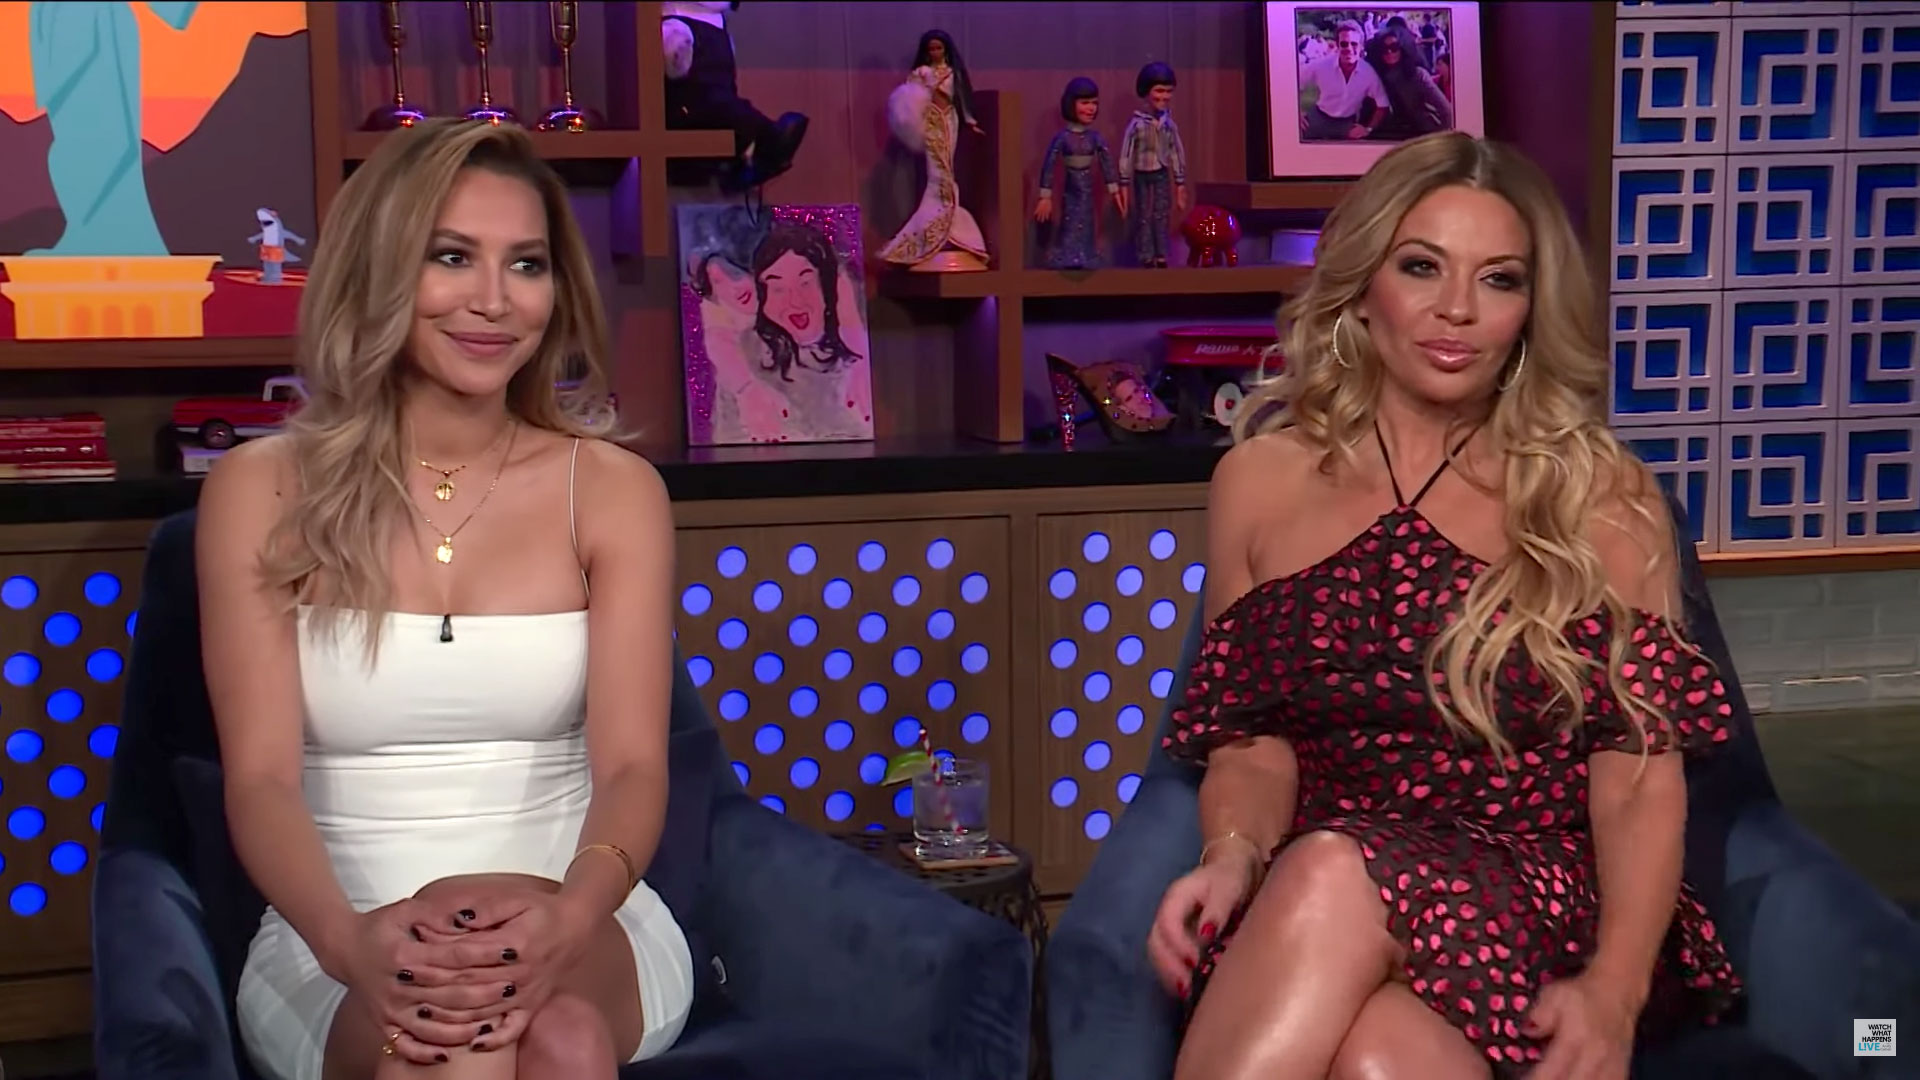 RHONJs-Dolores-Catania-Says-She-Hopes-Teresa-and-Joe-Giudice-Stay-Together-Amid-Drama - Naya Rivera and Dolores Catania appear on WWHL.